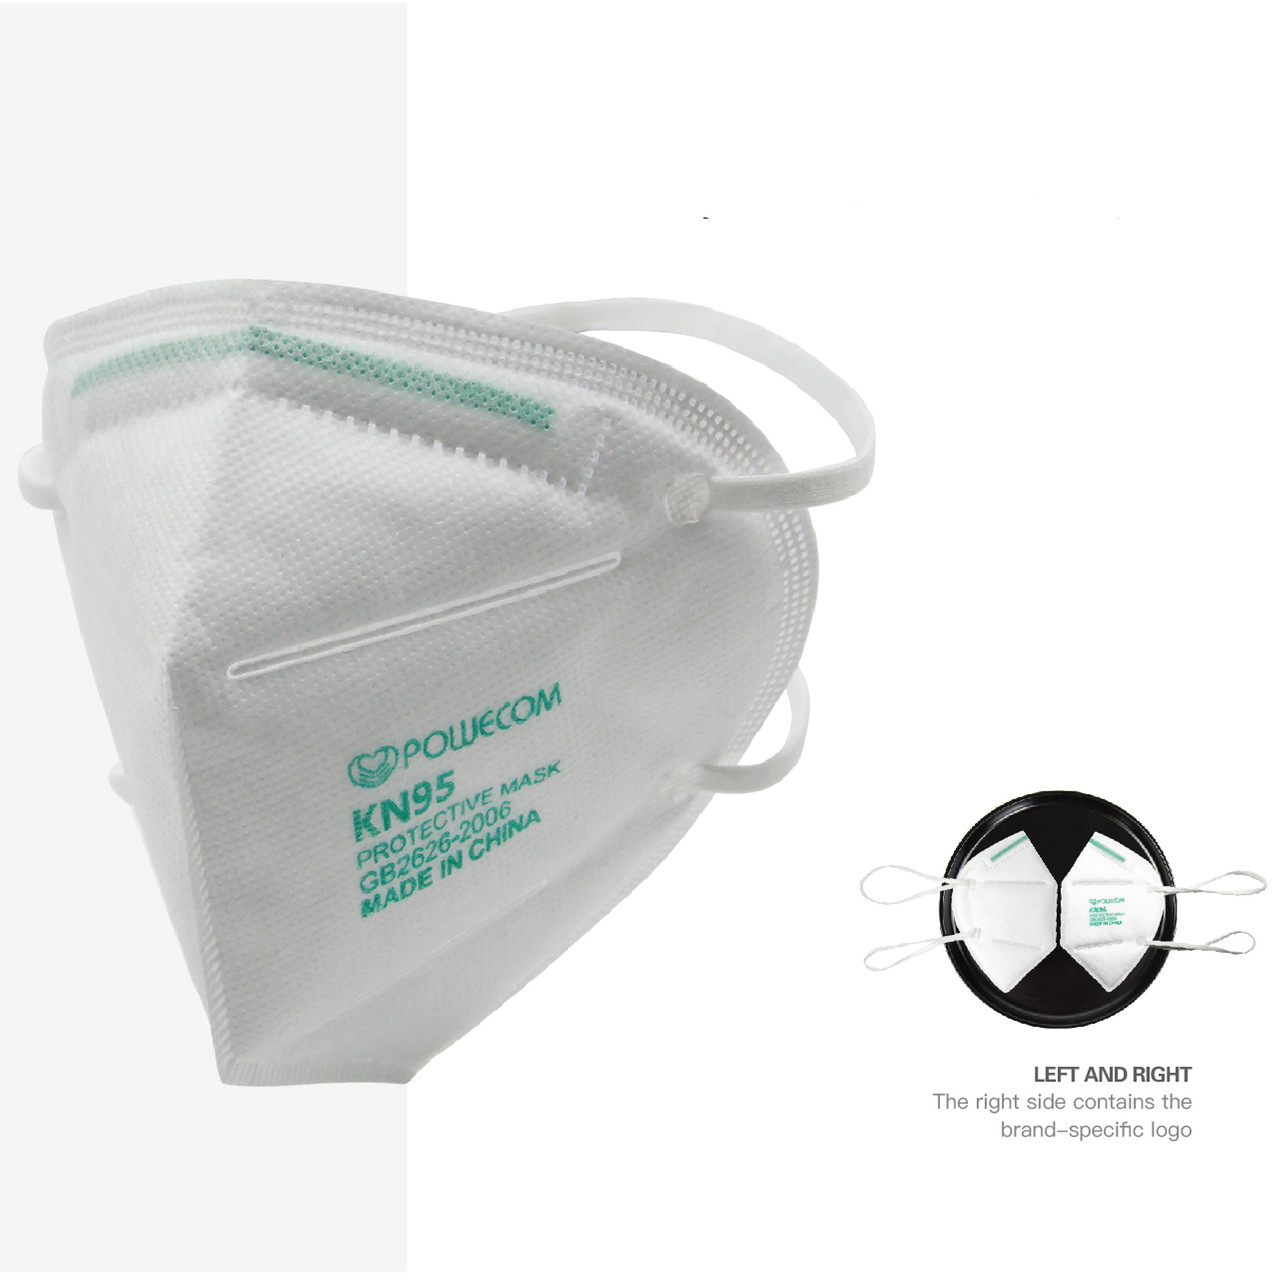 Powecom KN95 face mask distributed by Bona Fide Masks and Ball Chain manufacturing. This is the headband style FDA Authorized  version of the mask. It is white with the Powecom Green lettering and nose clip.